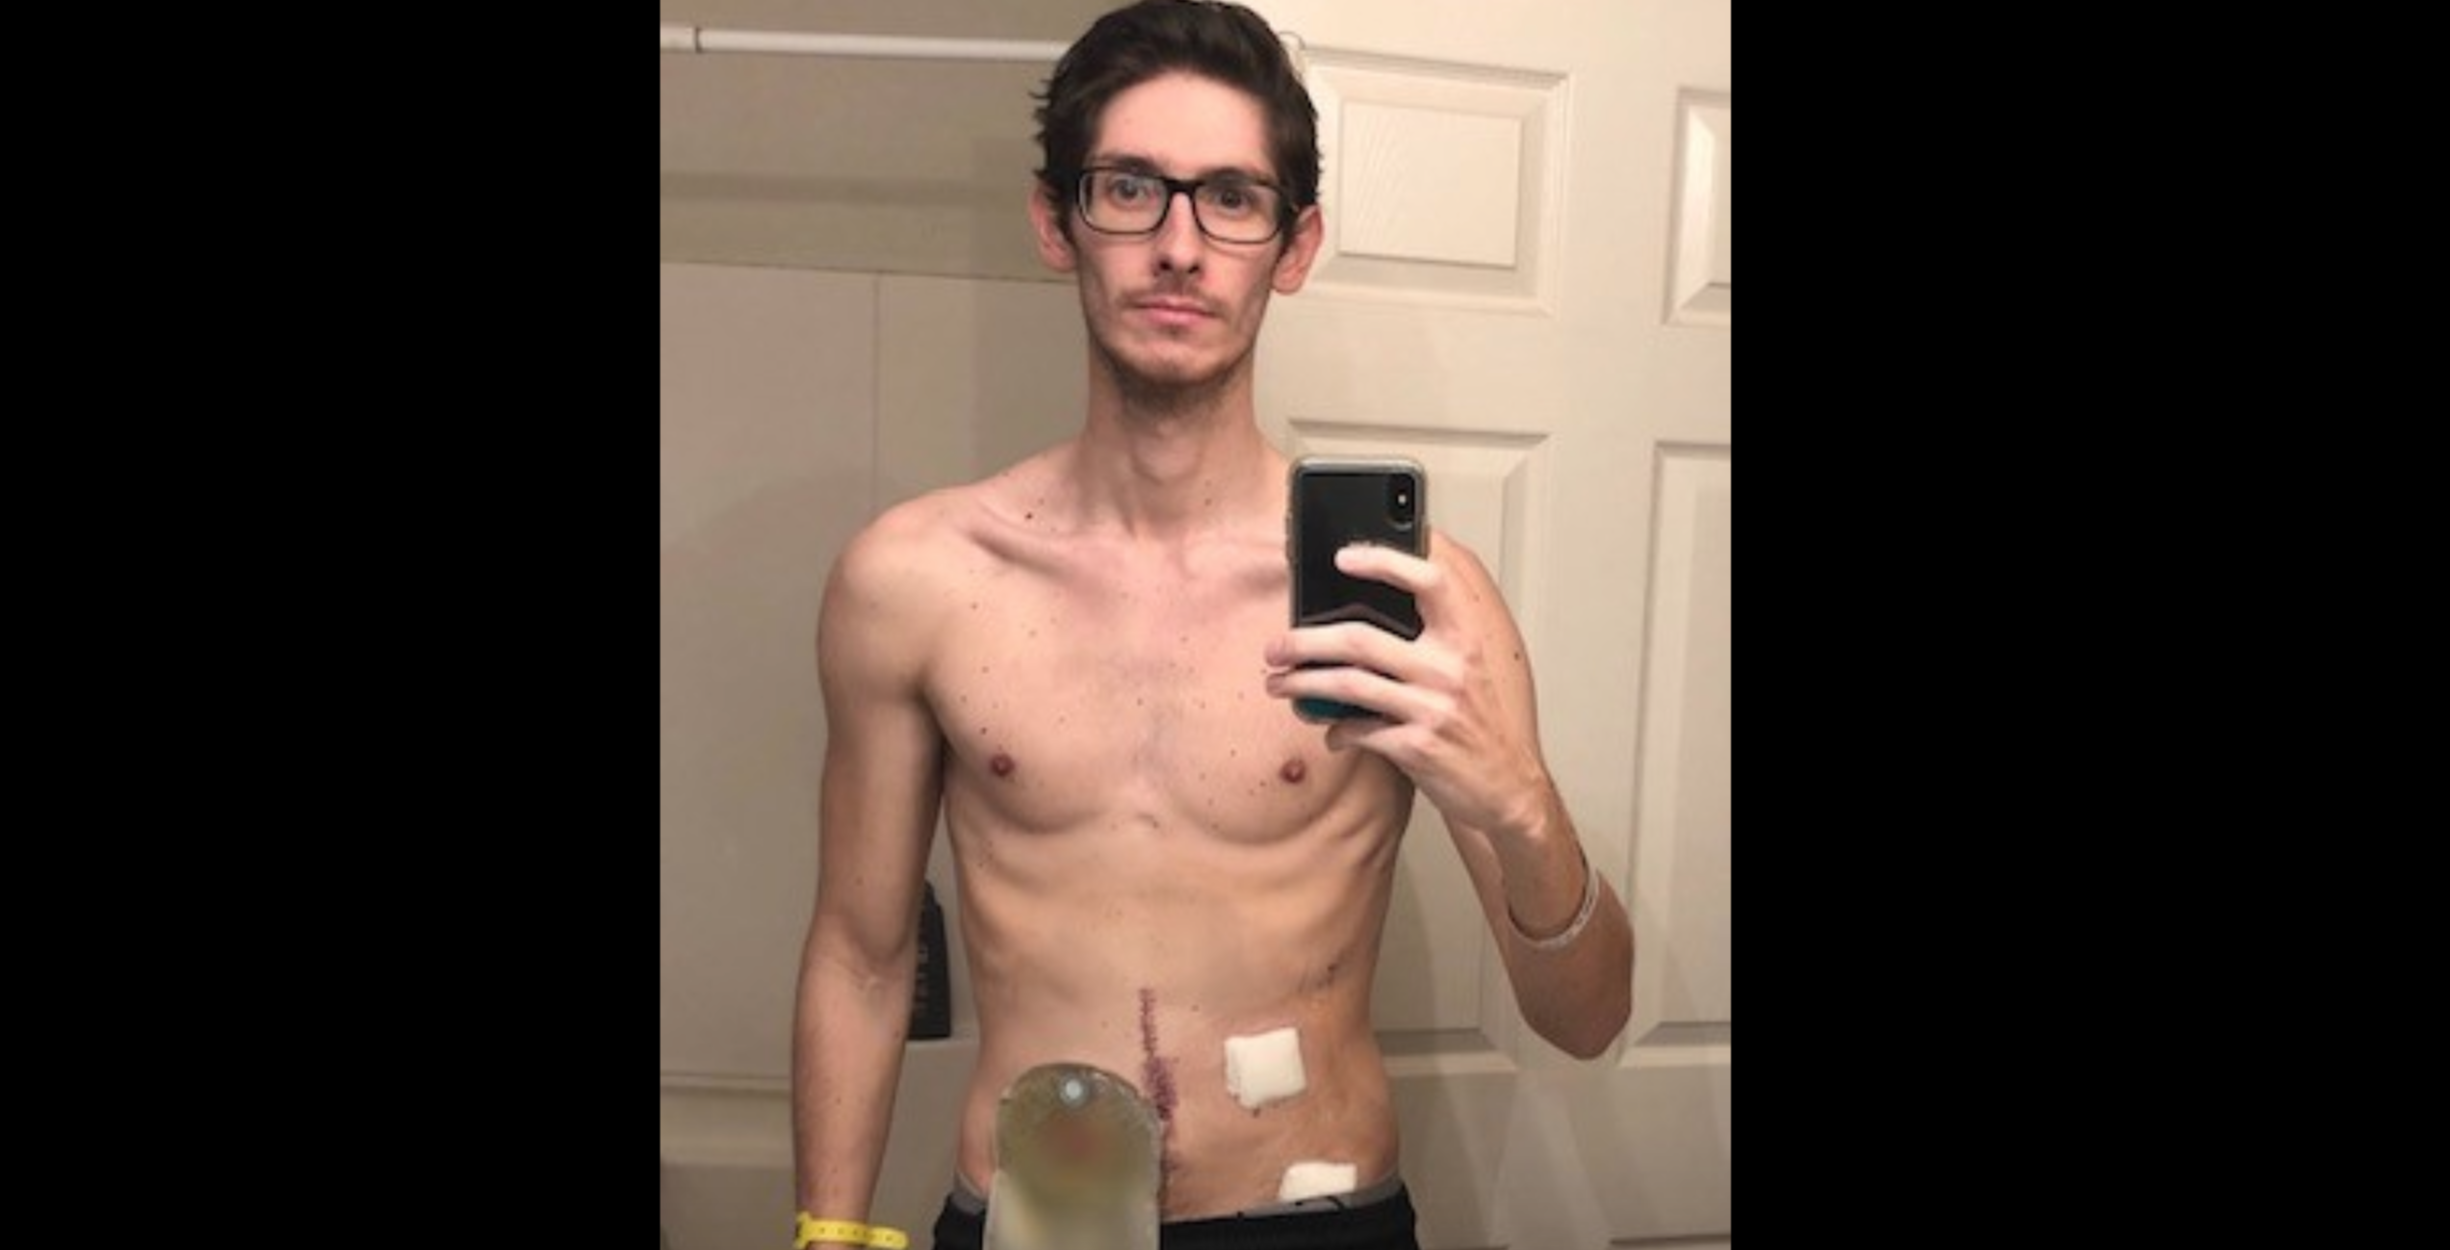 How This Skinny Guy Gained 48 Pounds and Sculpted a Six-Pack in 7 Months